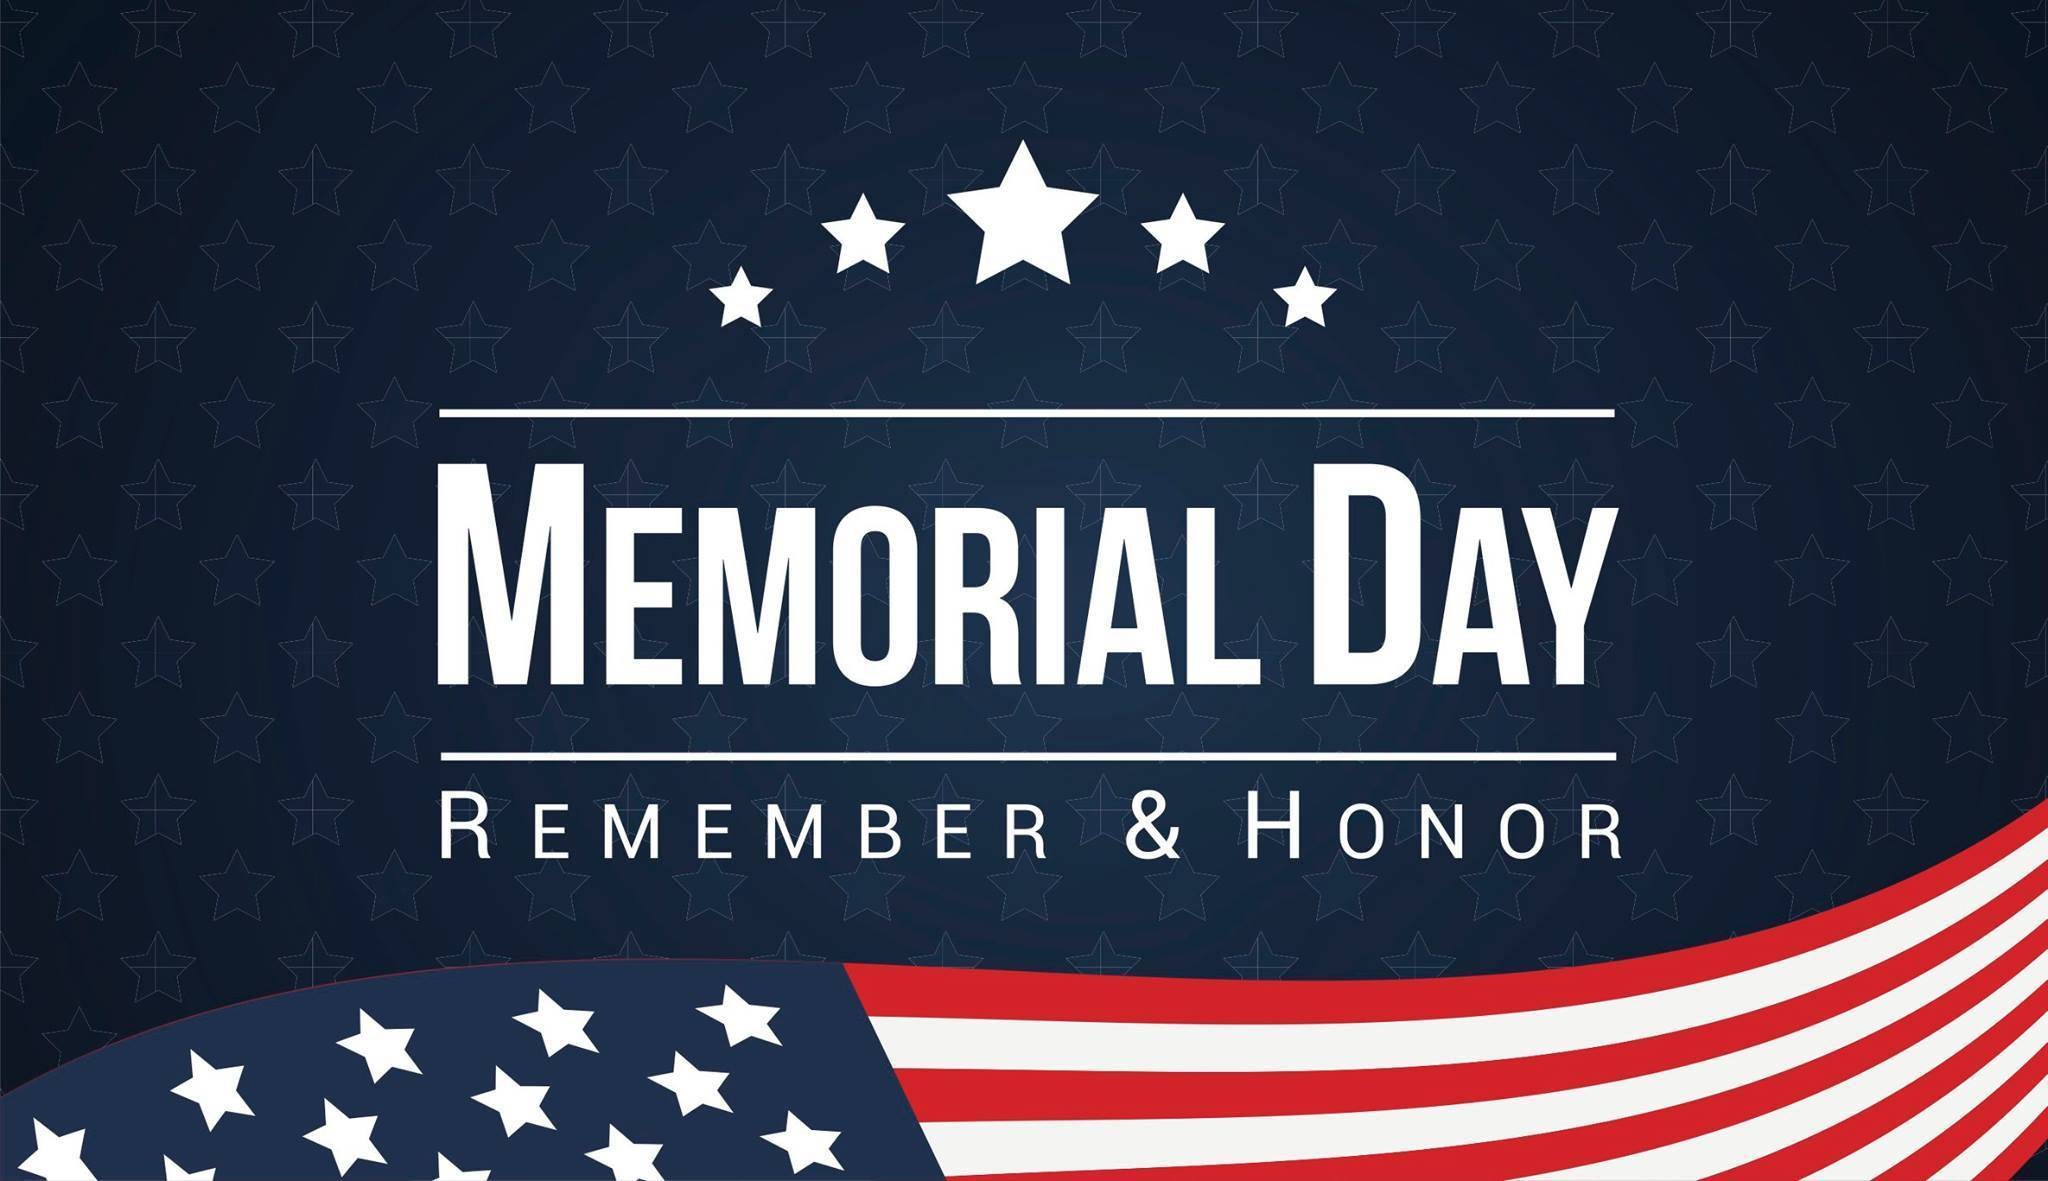 Moench: Remember that Memorial Day is Day of Remembrance ...